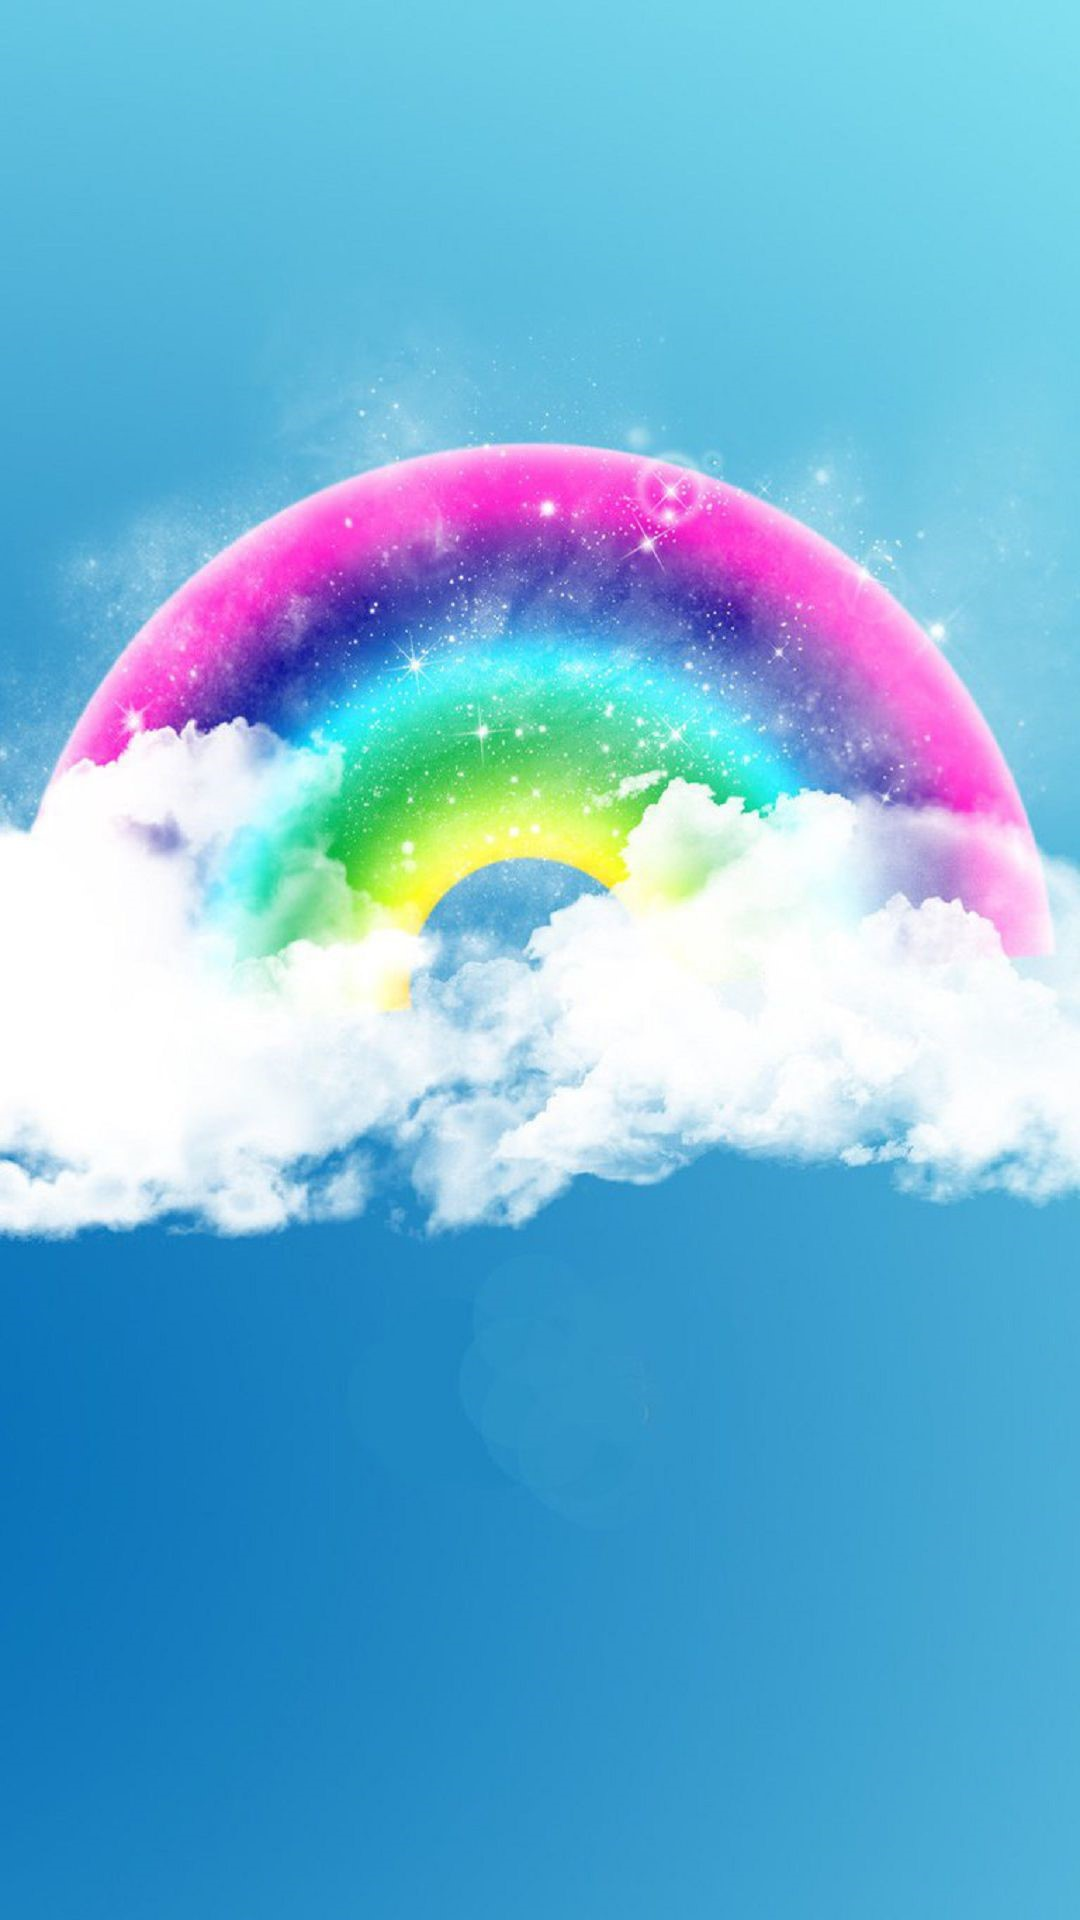 Fantasy Arco-iris Fluffy Clouds Android Wallpaper Whatsapp, - Watercolor Rainbow With Clouds , HD Wallpaper & Backgrounds